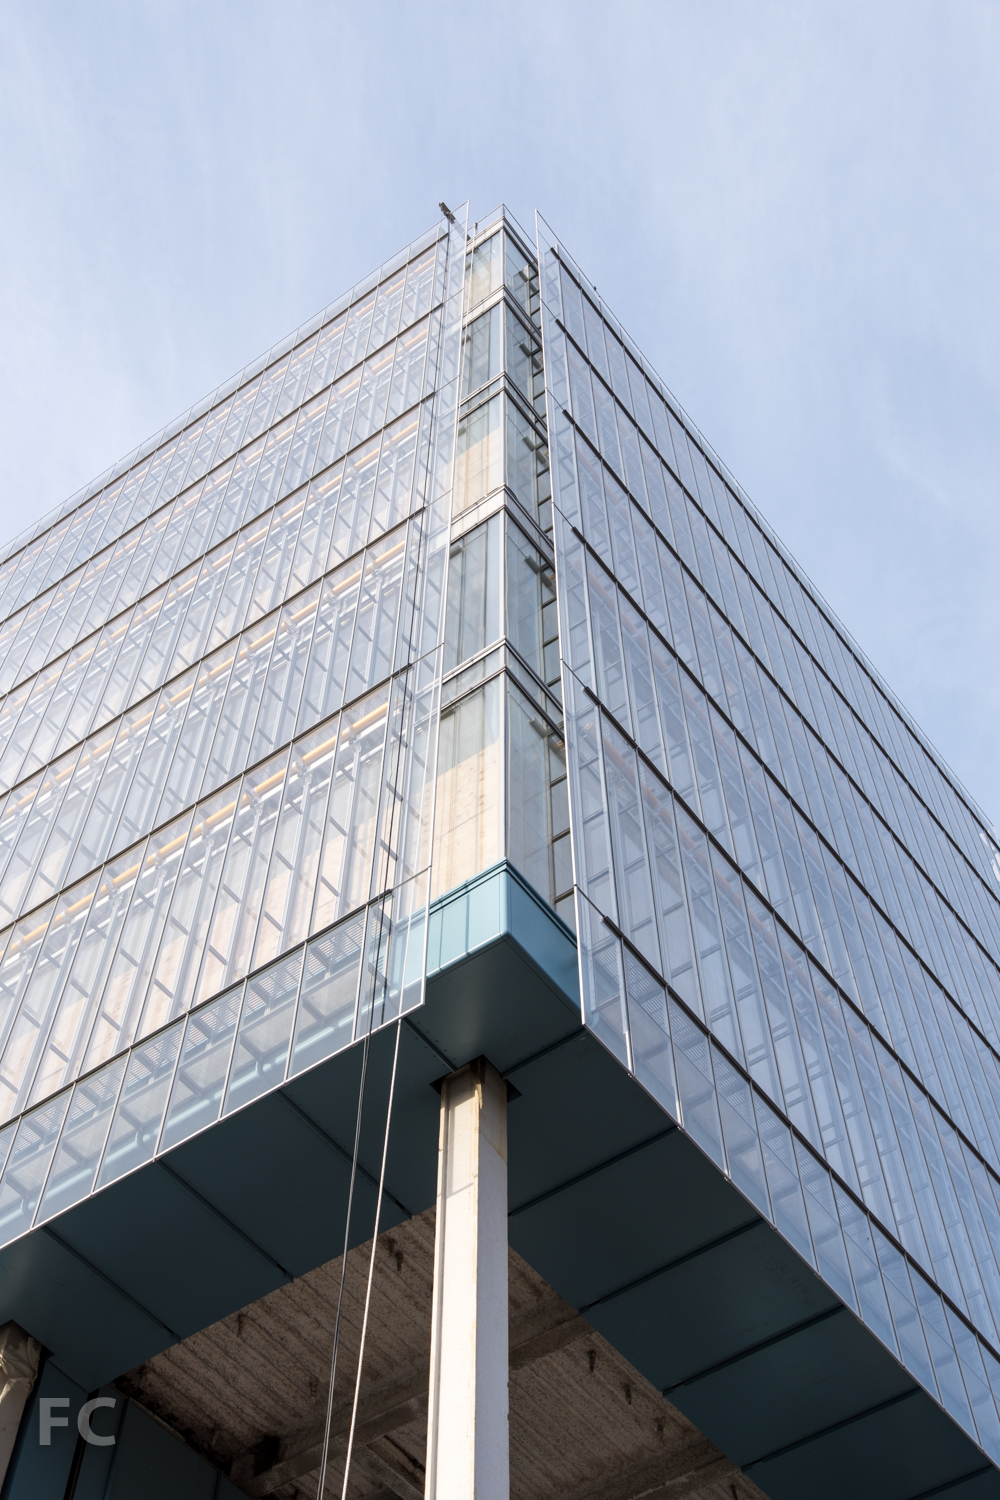 Detail of curtain wall at southeast corner of the Science Center.